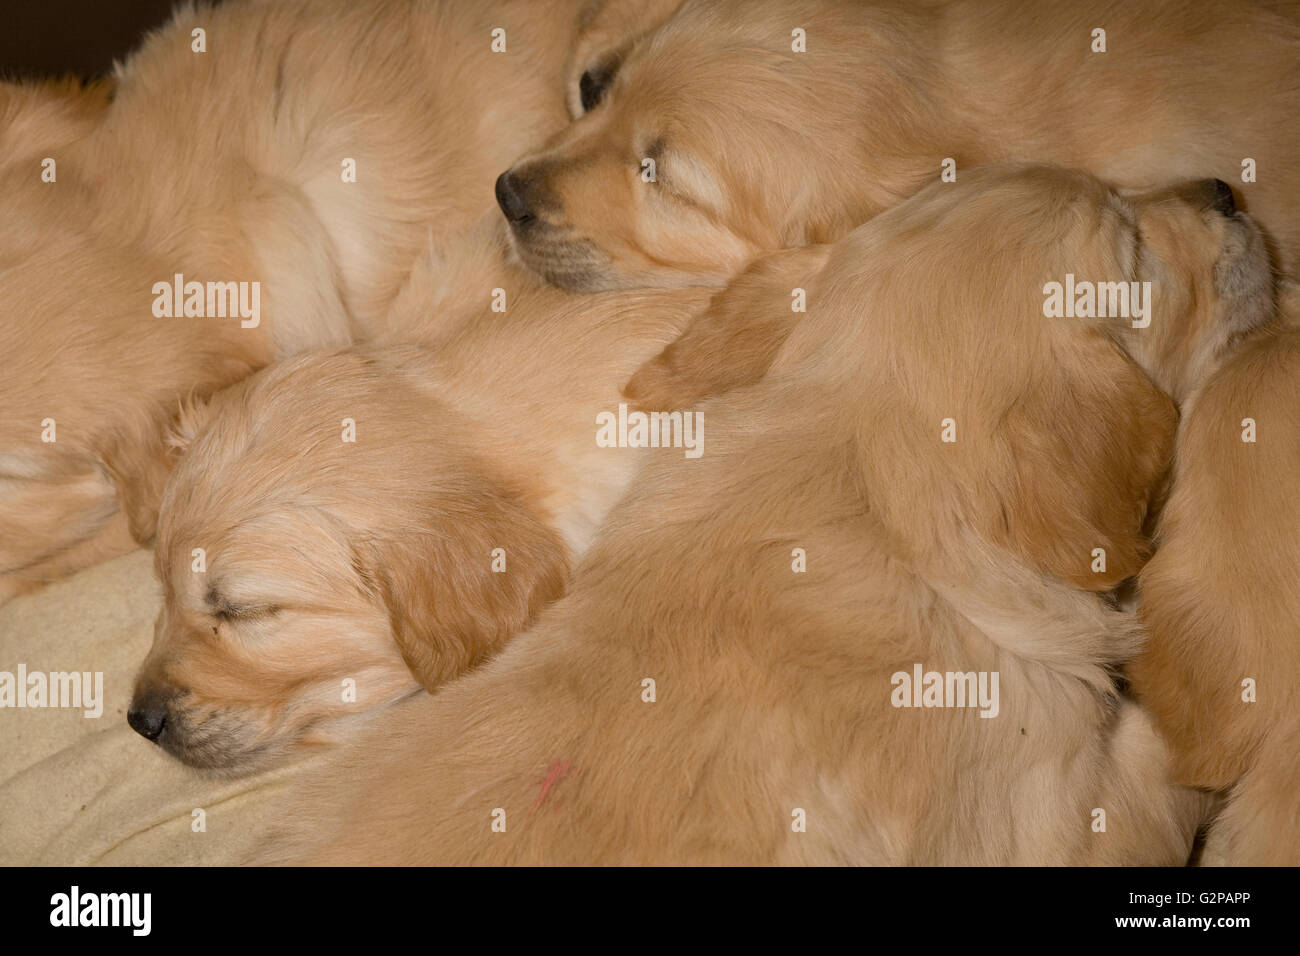 Golden retriever puppies sleeping in comfort close and cosy - Stock Image